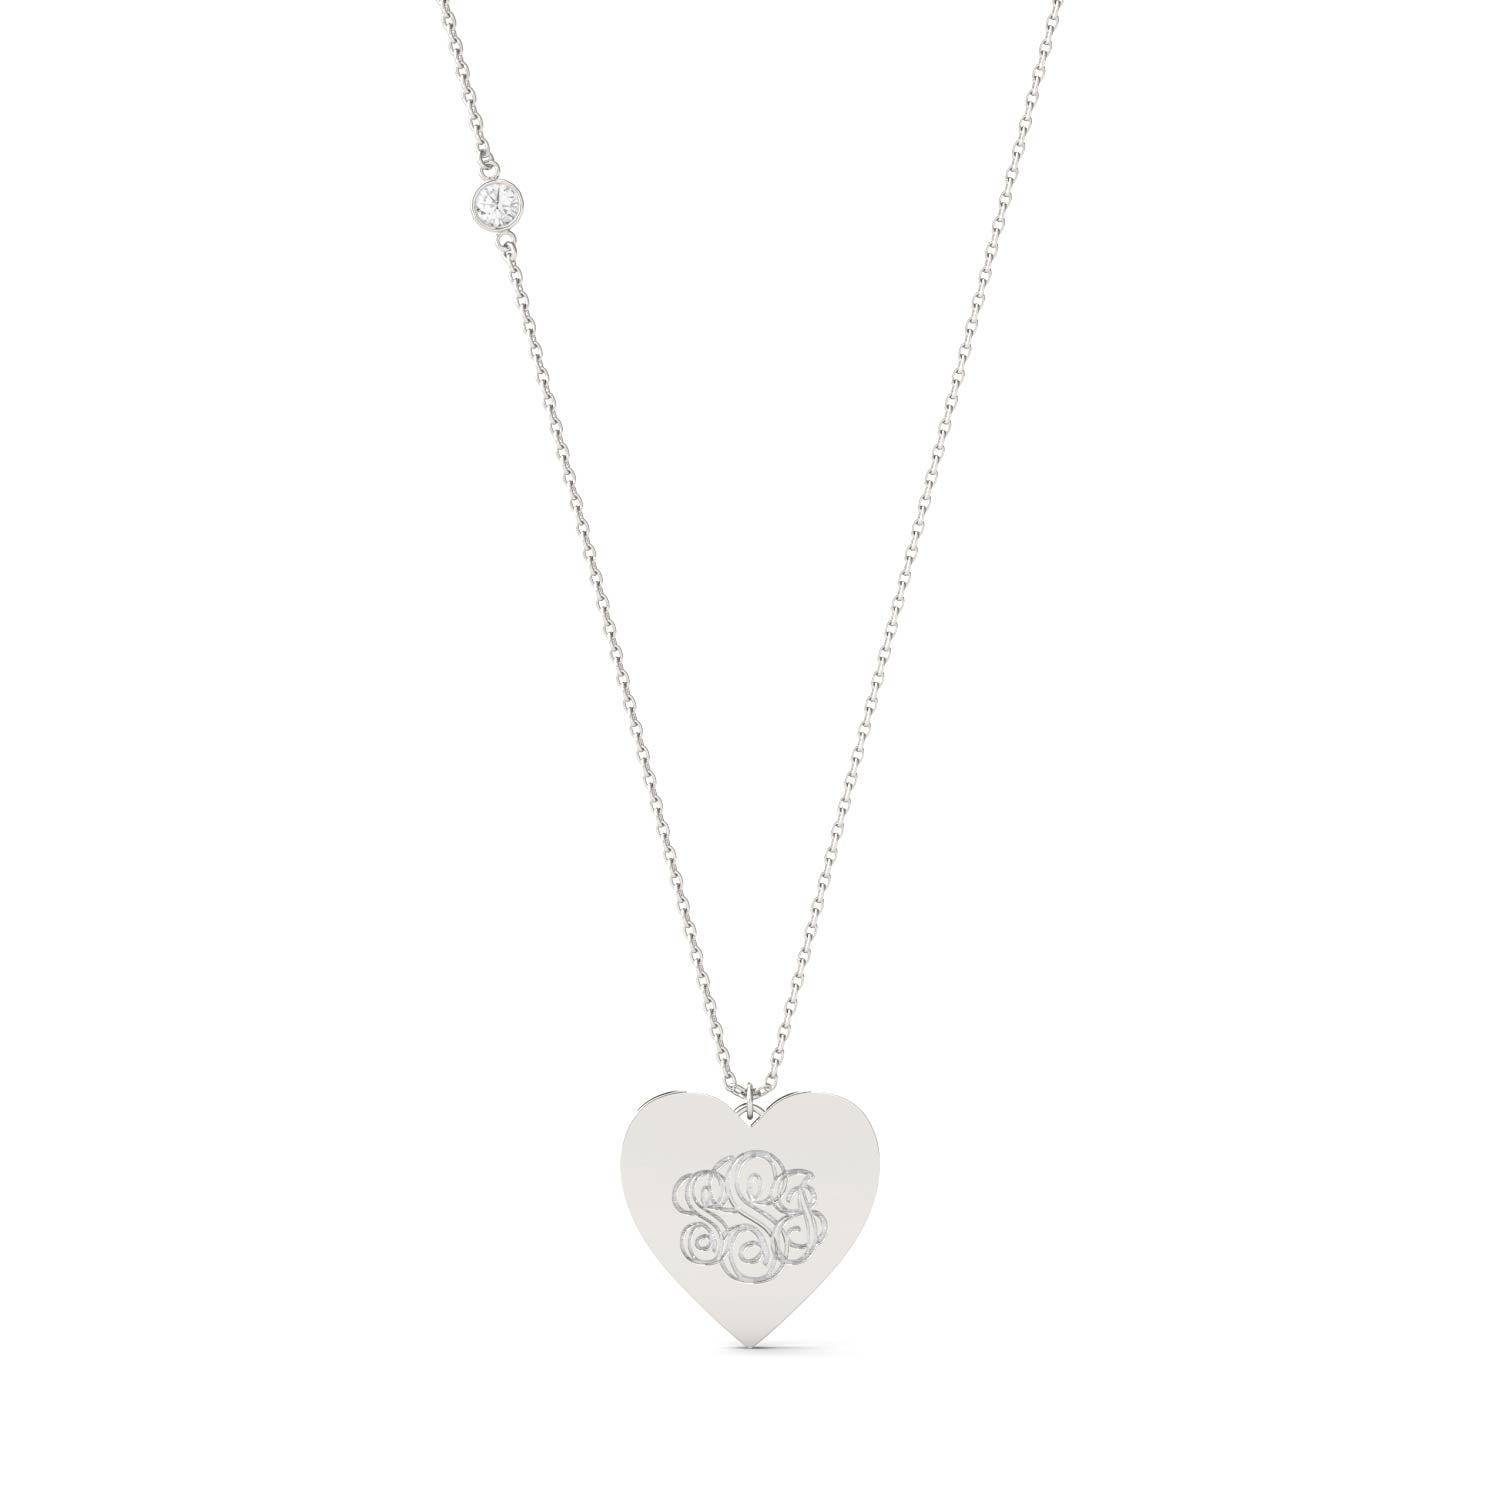 Charles & Colvard Personalized Heart Shaped Monogram Necklace White Gold in 925 White Silver, 0.10CTW Round Forever One Moissanite Accent Stones Charles & Colvard  - White Gold - Size: One Size